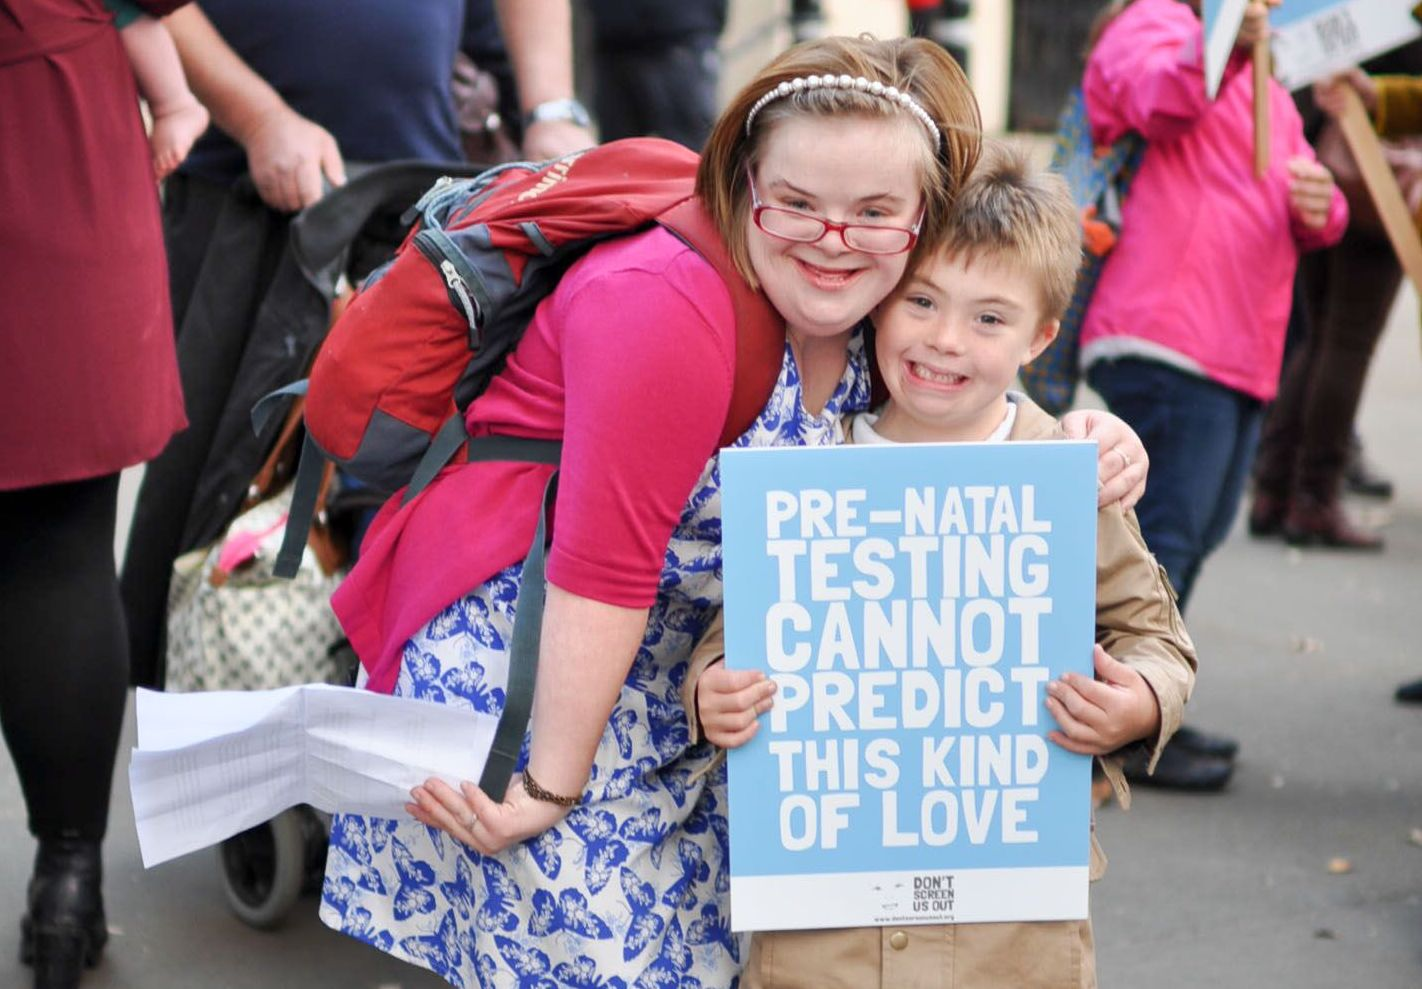 Woman with Down's Syndrome pleads with politicians to end discriminatory abortion - UK CHRISTIAN